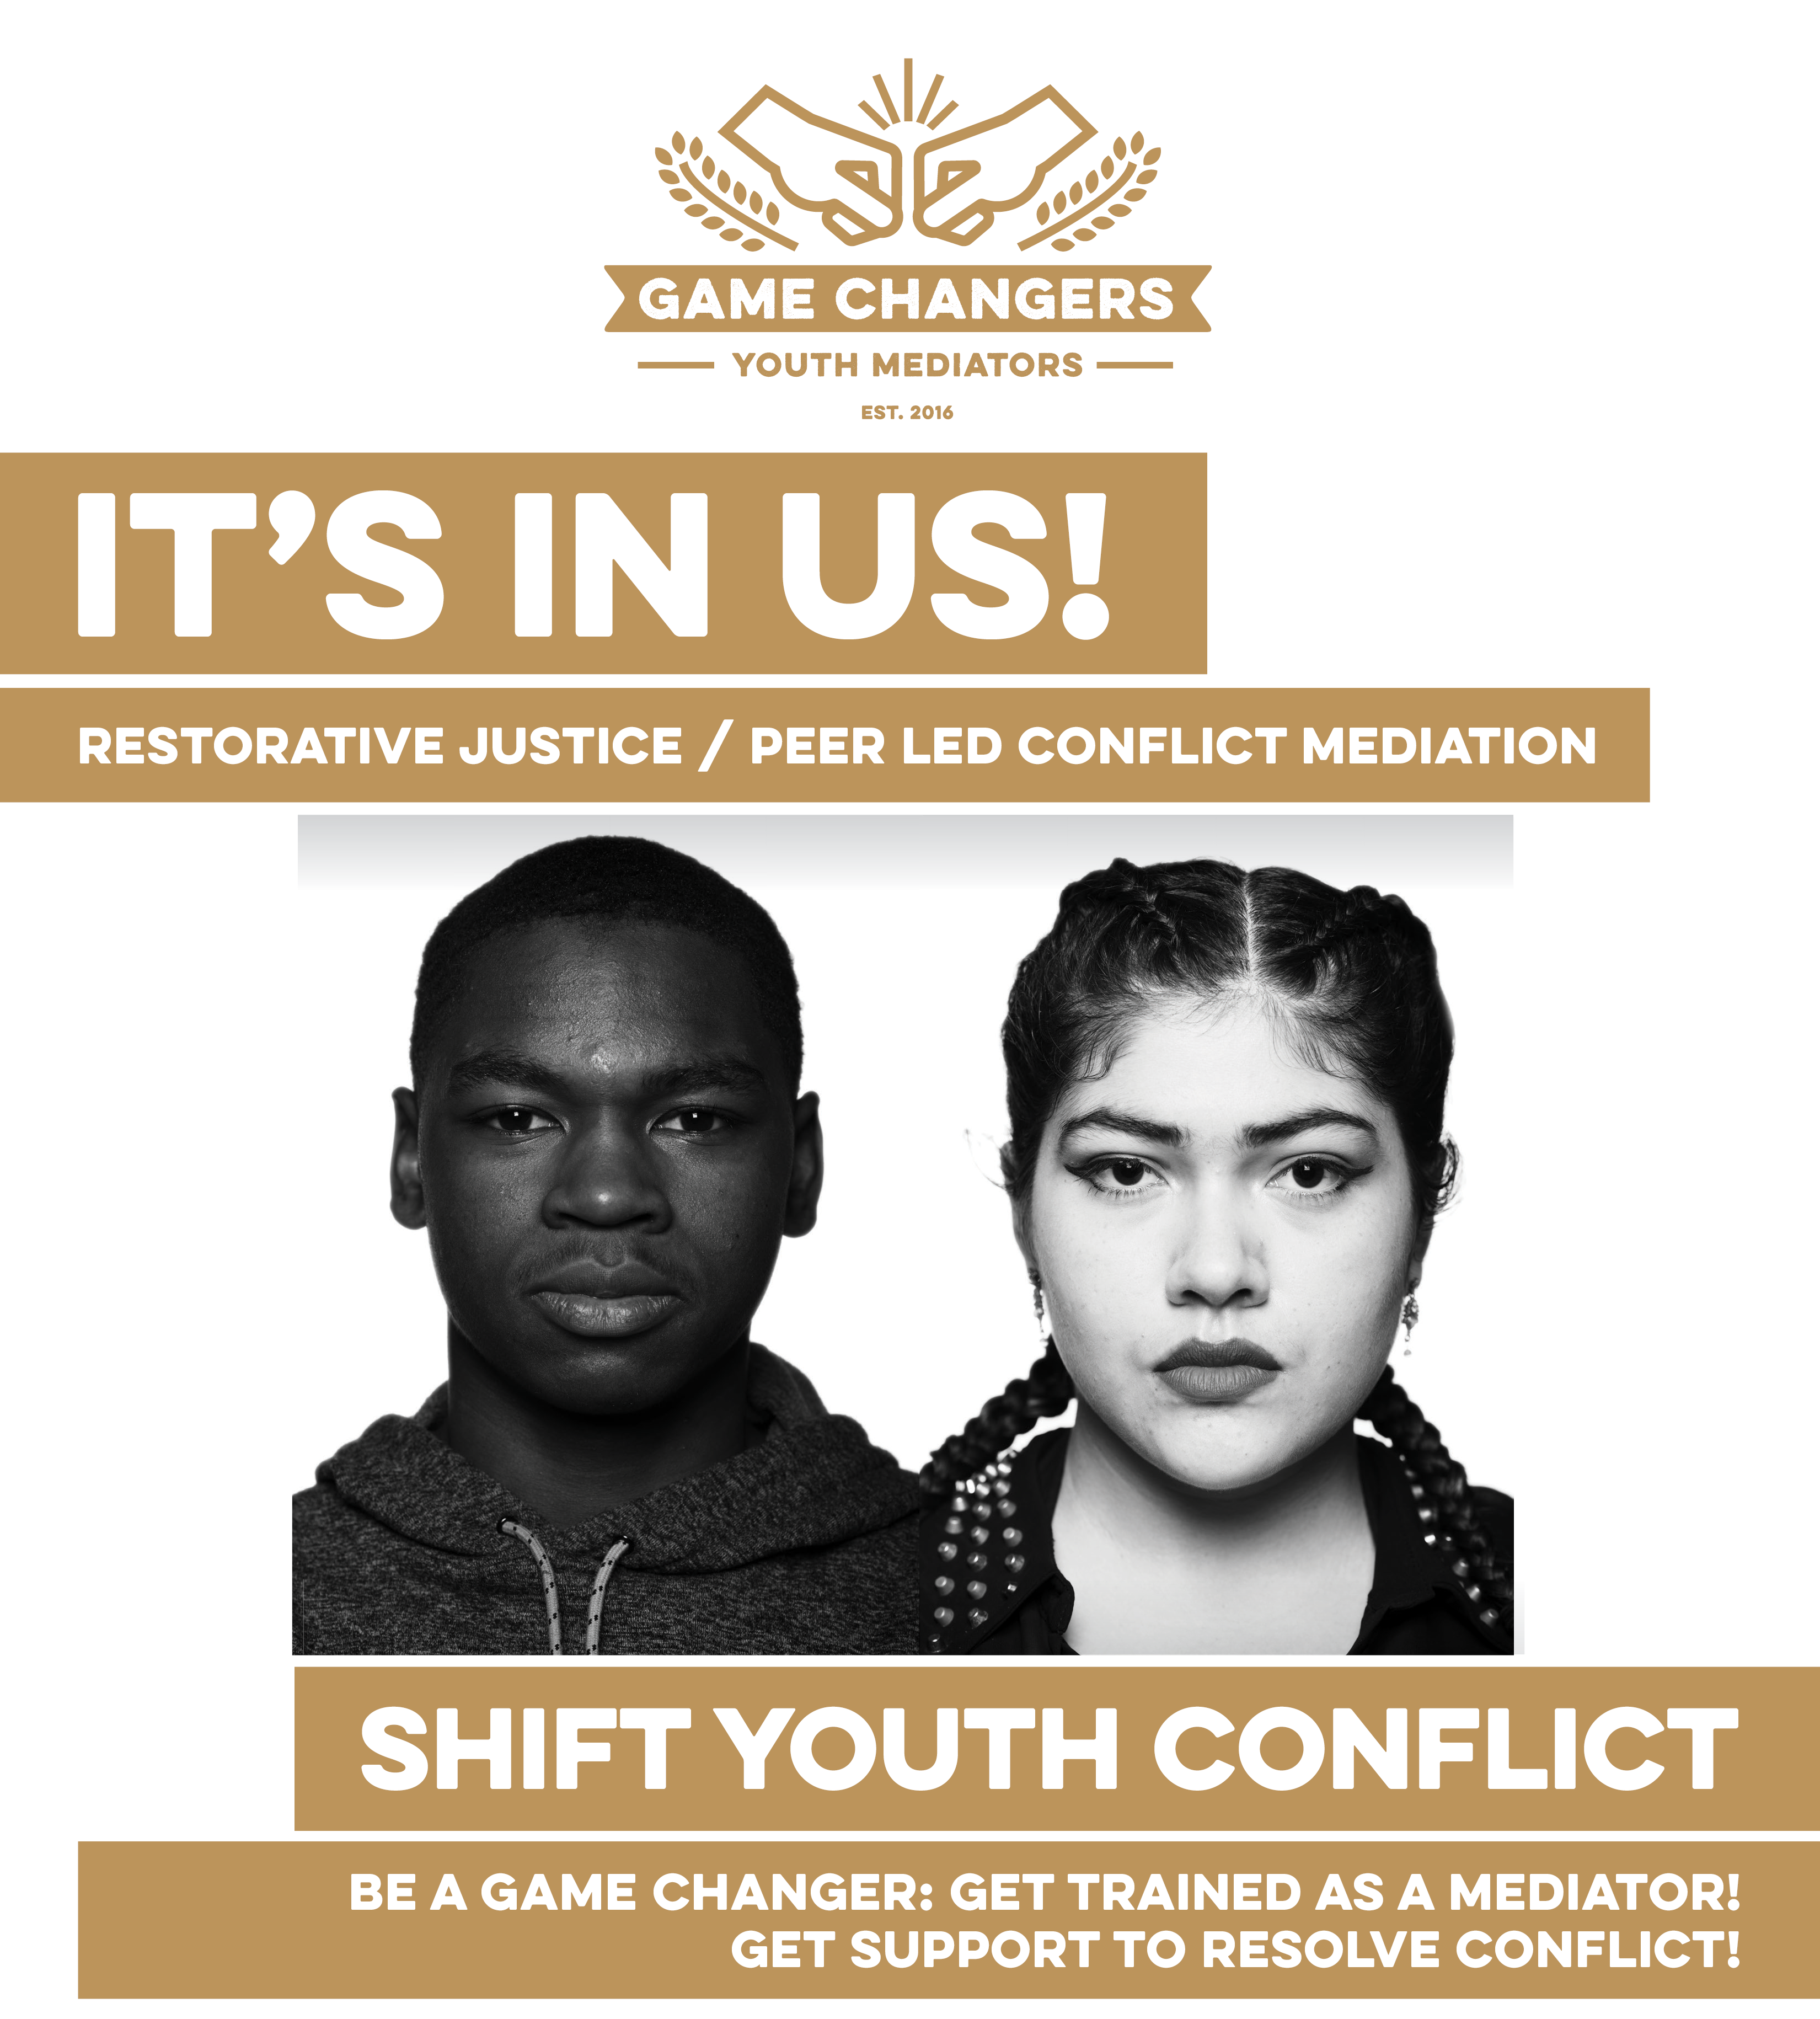 Game Changers - Youth Mediators: Restorative Justice Peer Led Conflict Mediation